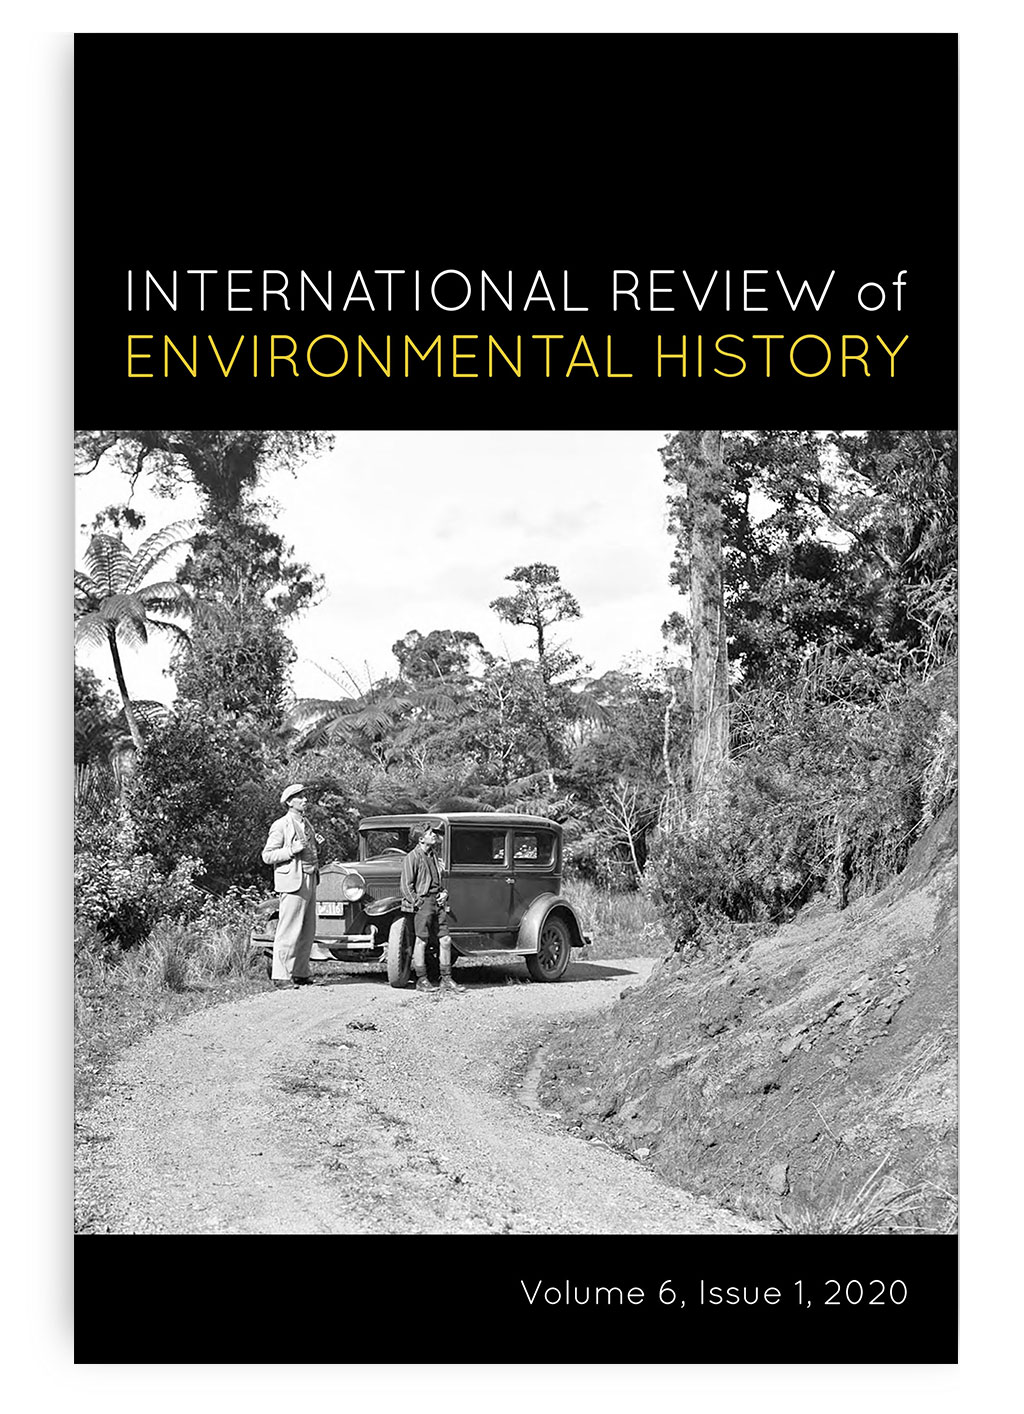 International Review of Environmental History: Volume 6, Issue 1, 2020